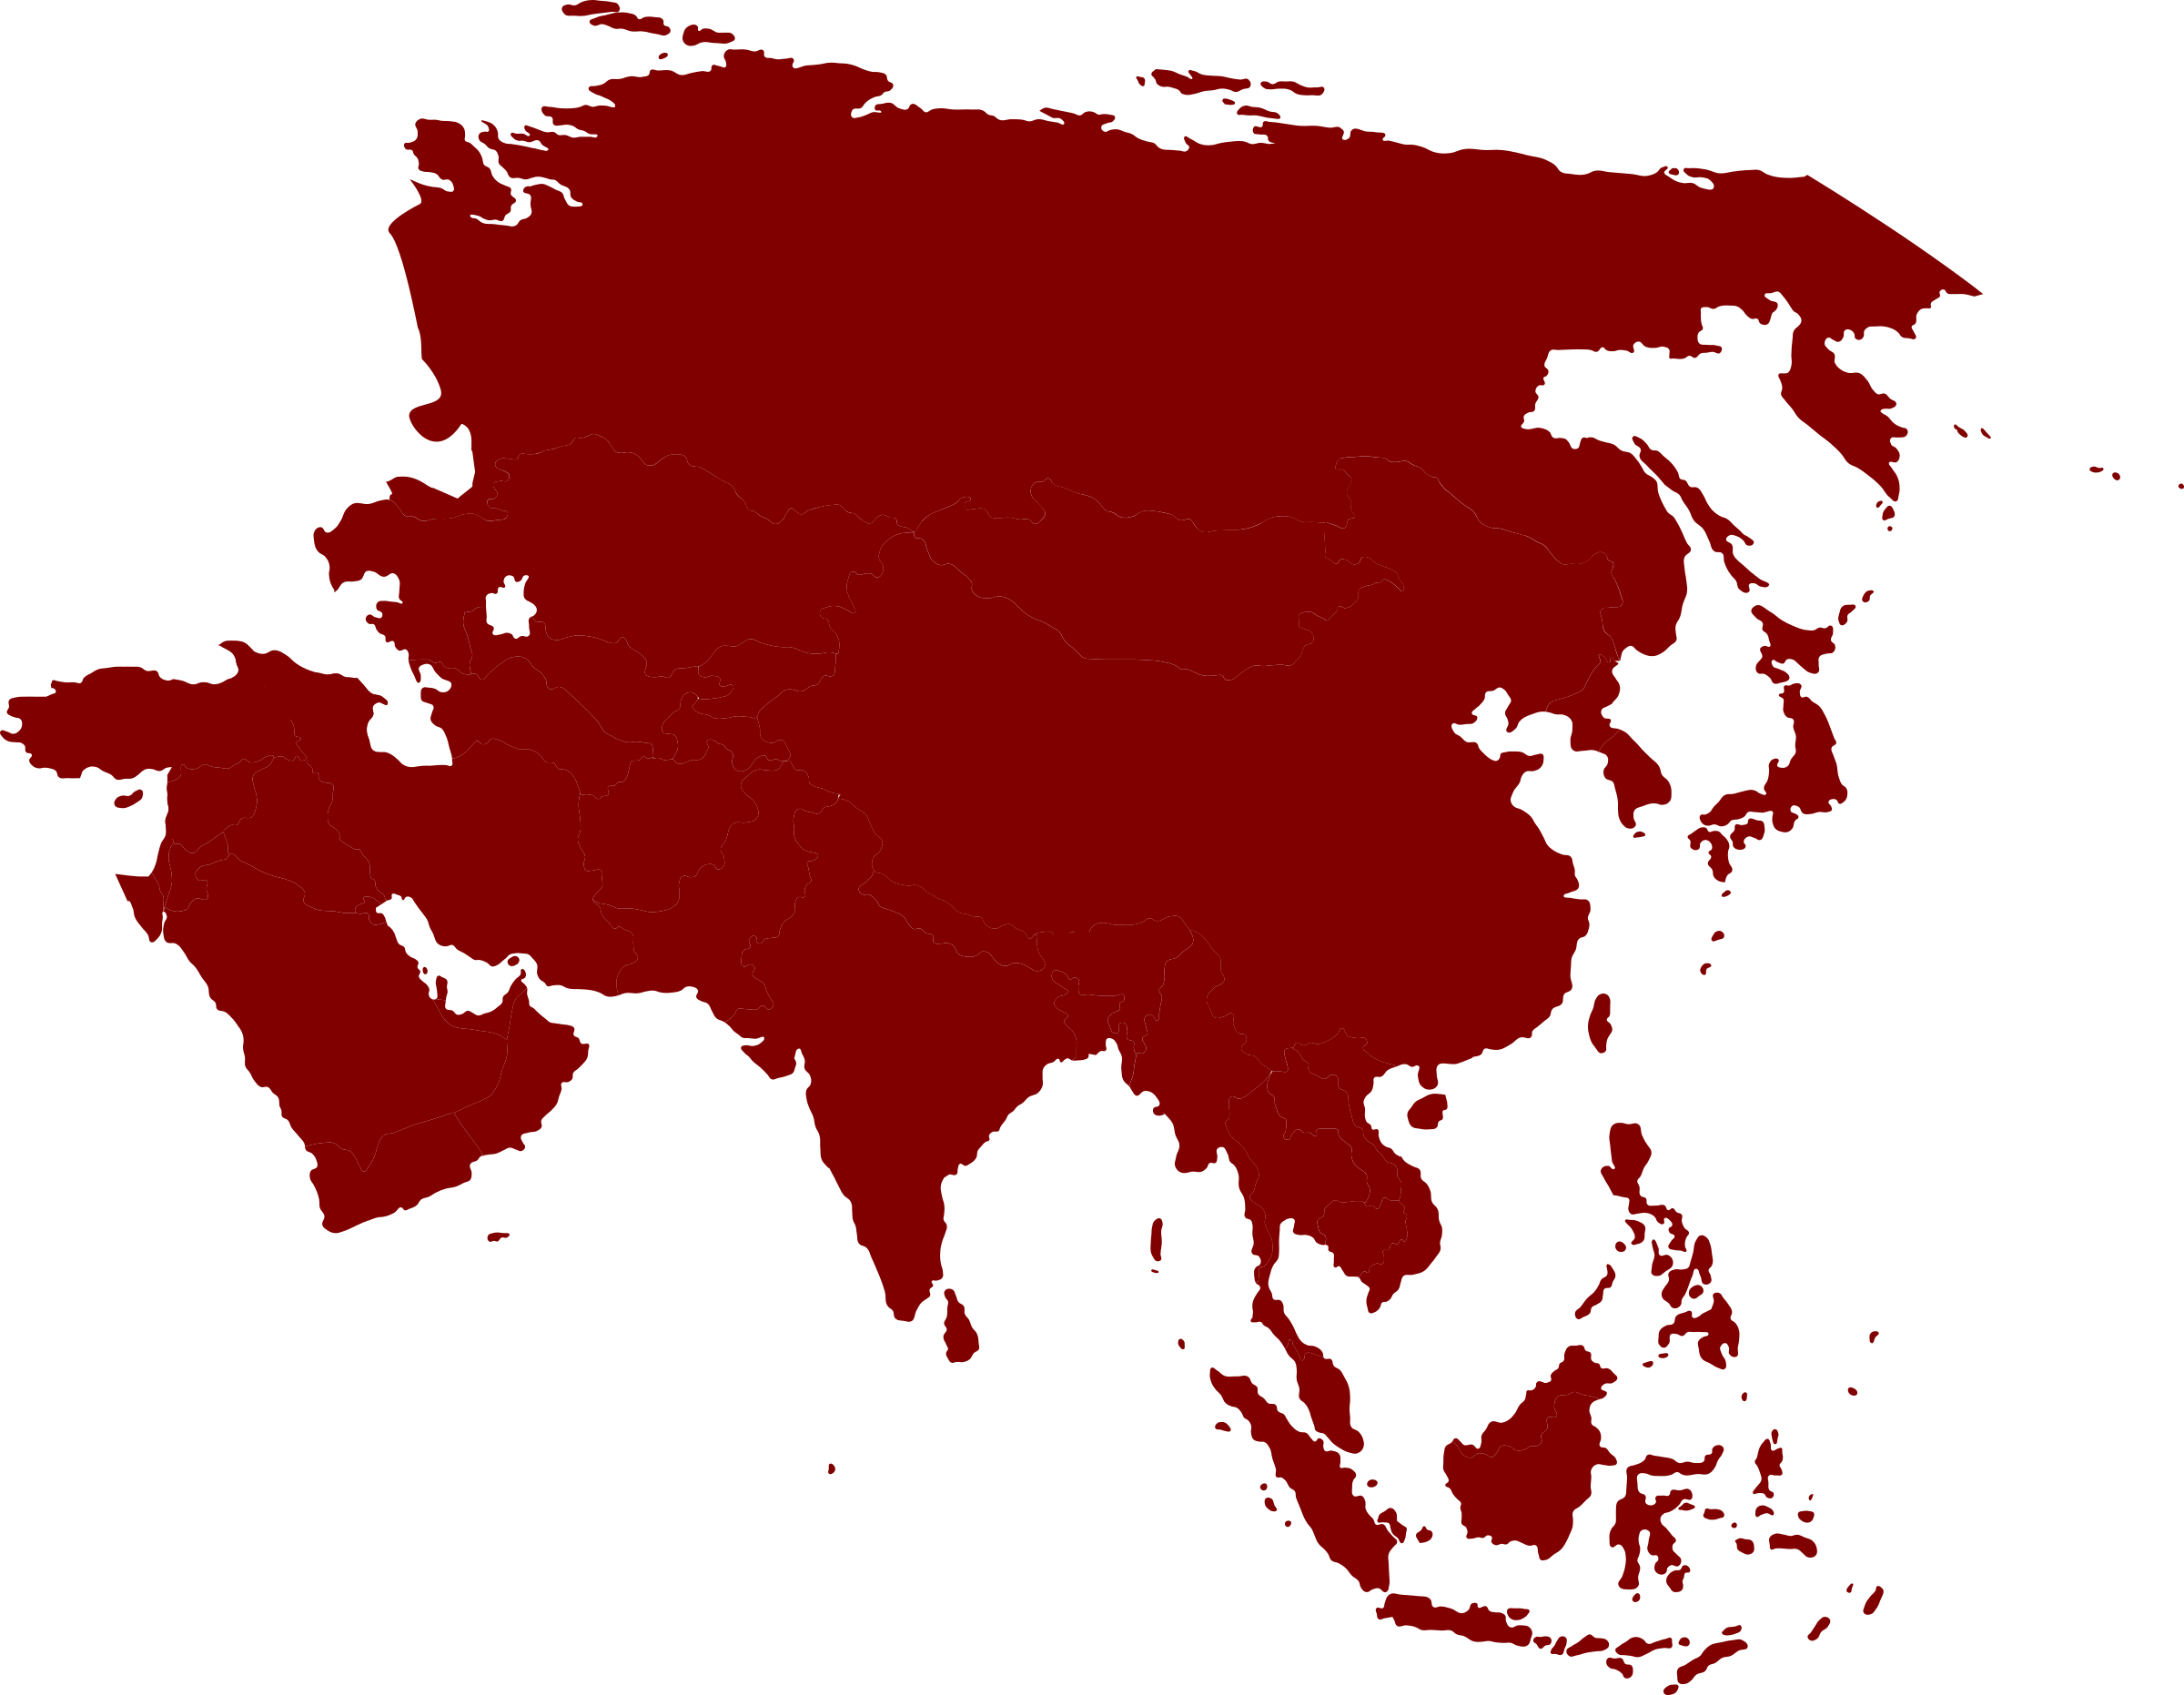 Asian big image png. Clipart map continent